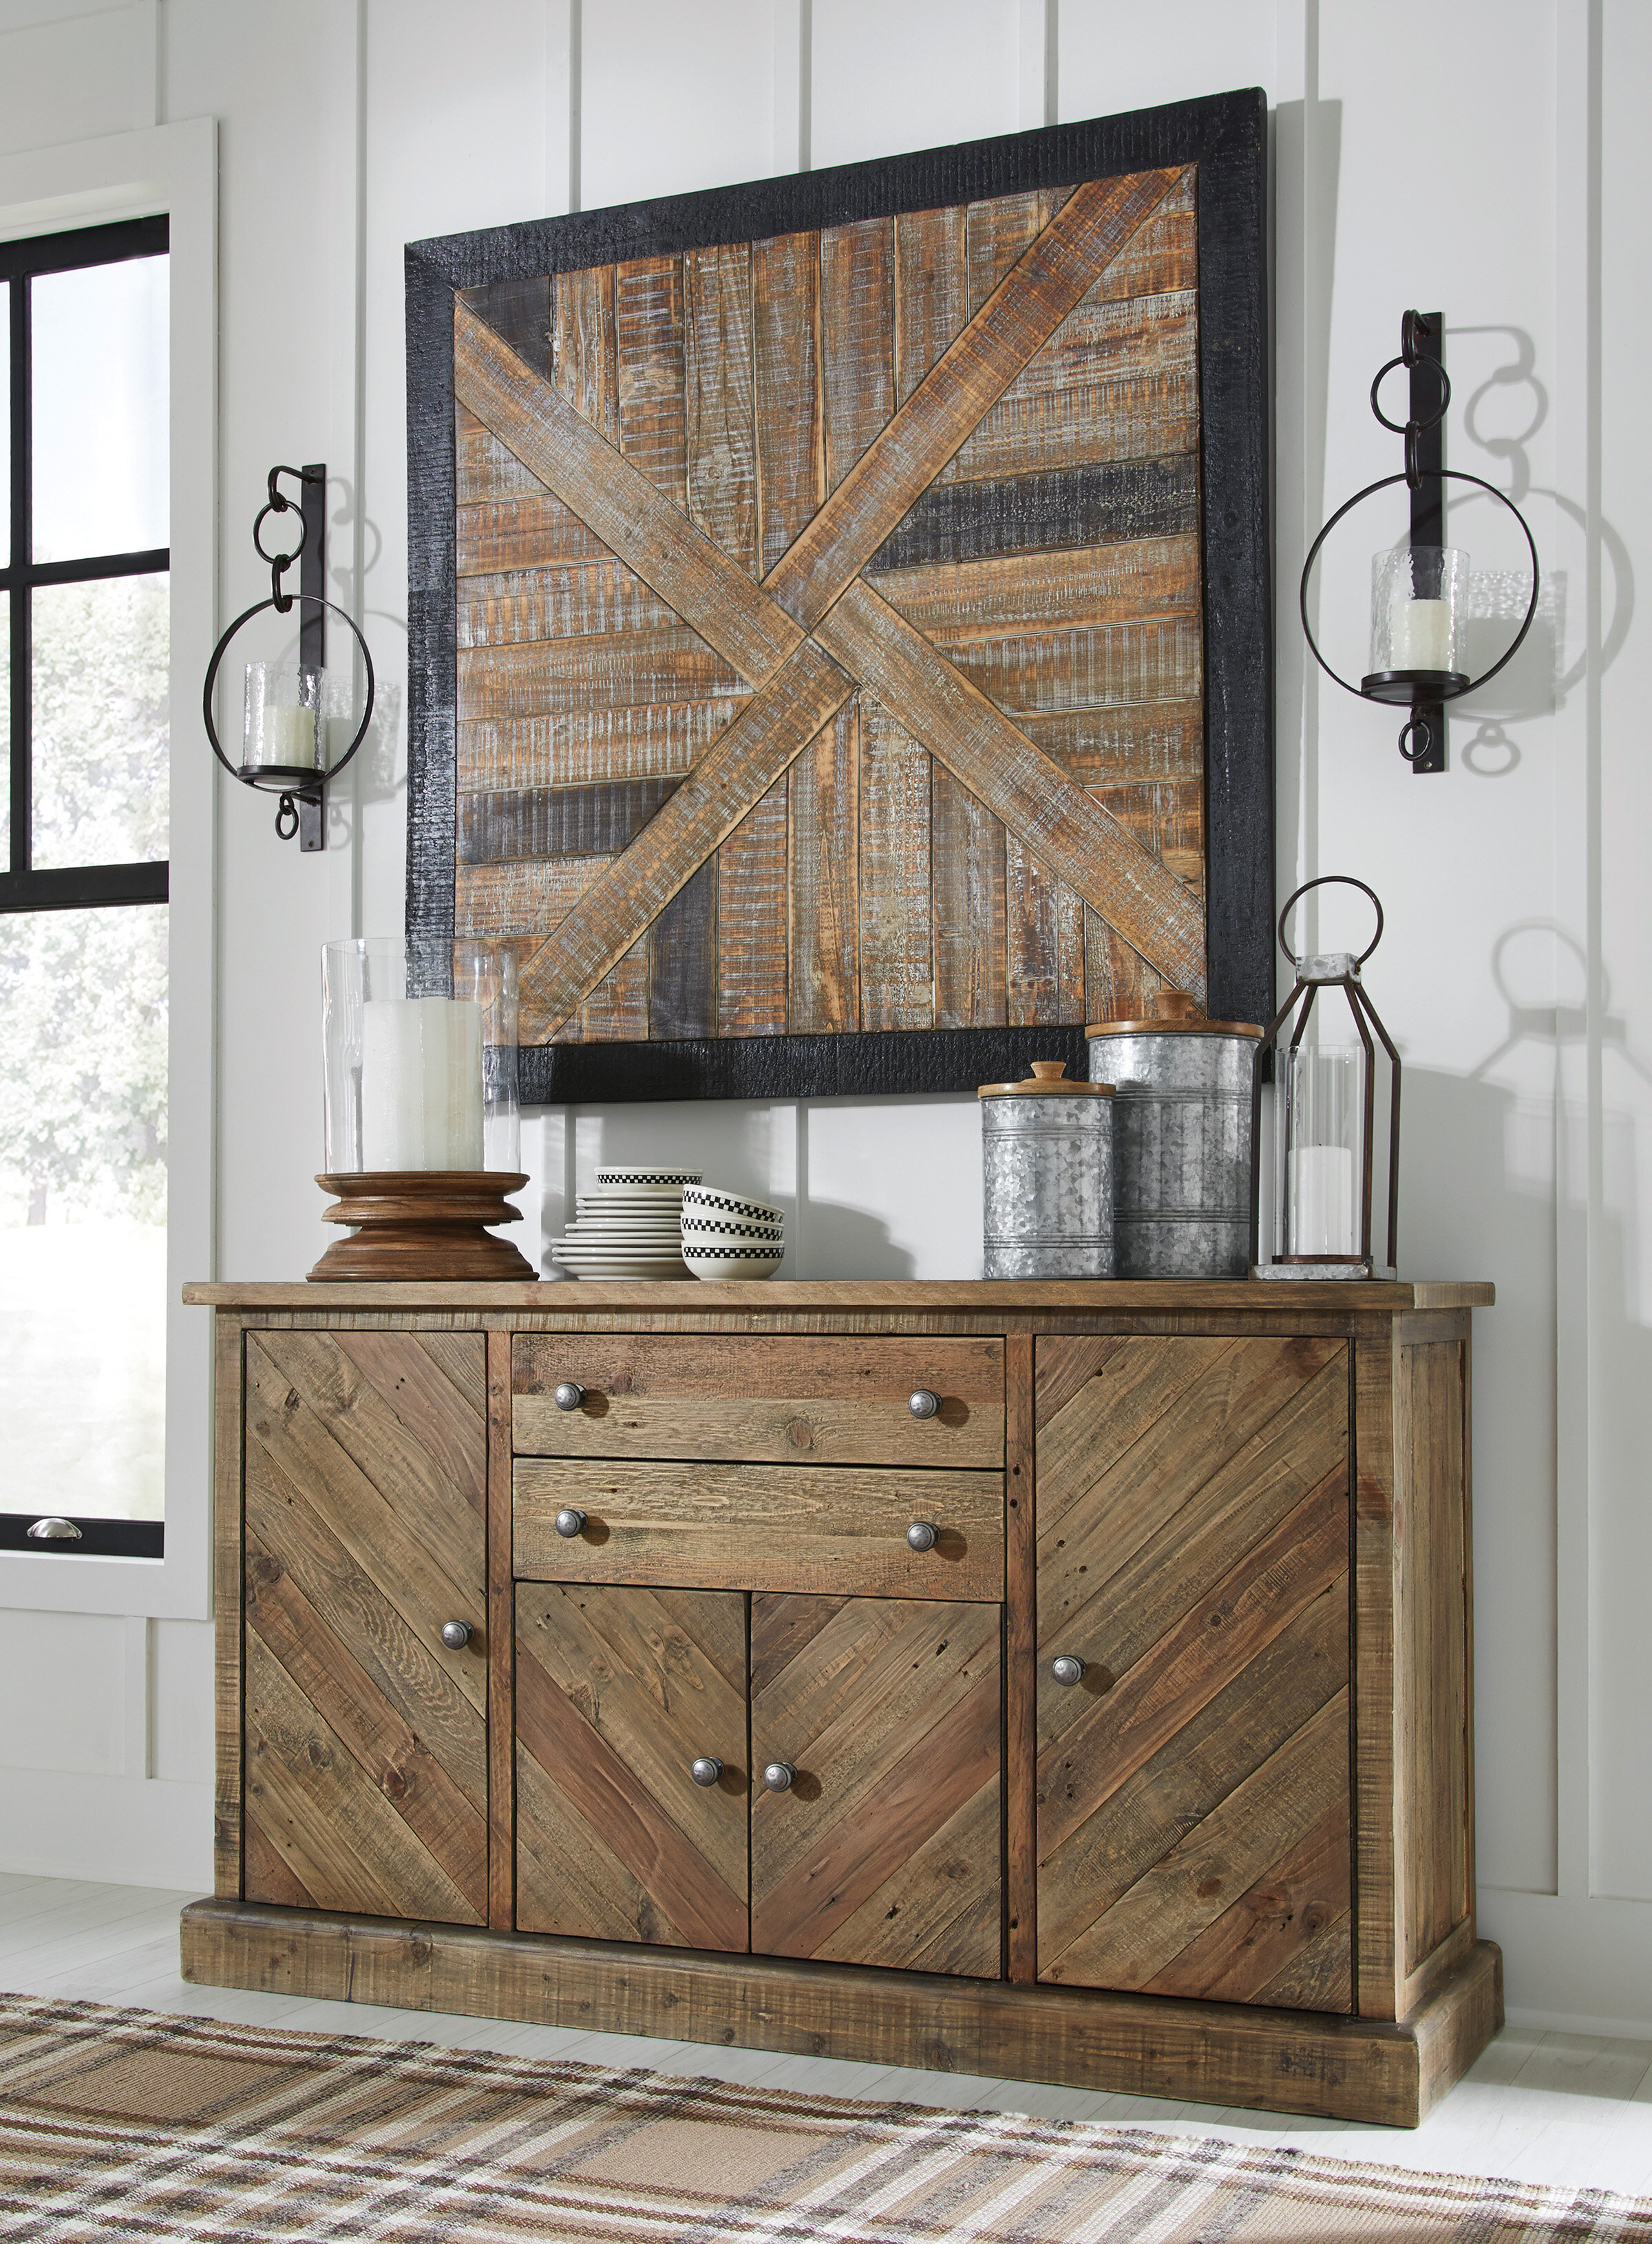 Jessamine Sideboard & Reviews | Joss & Main With Regard To Colborne Sideboards (View 17 of 30)